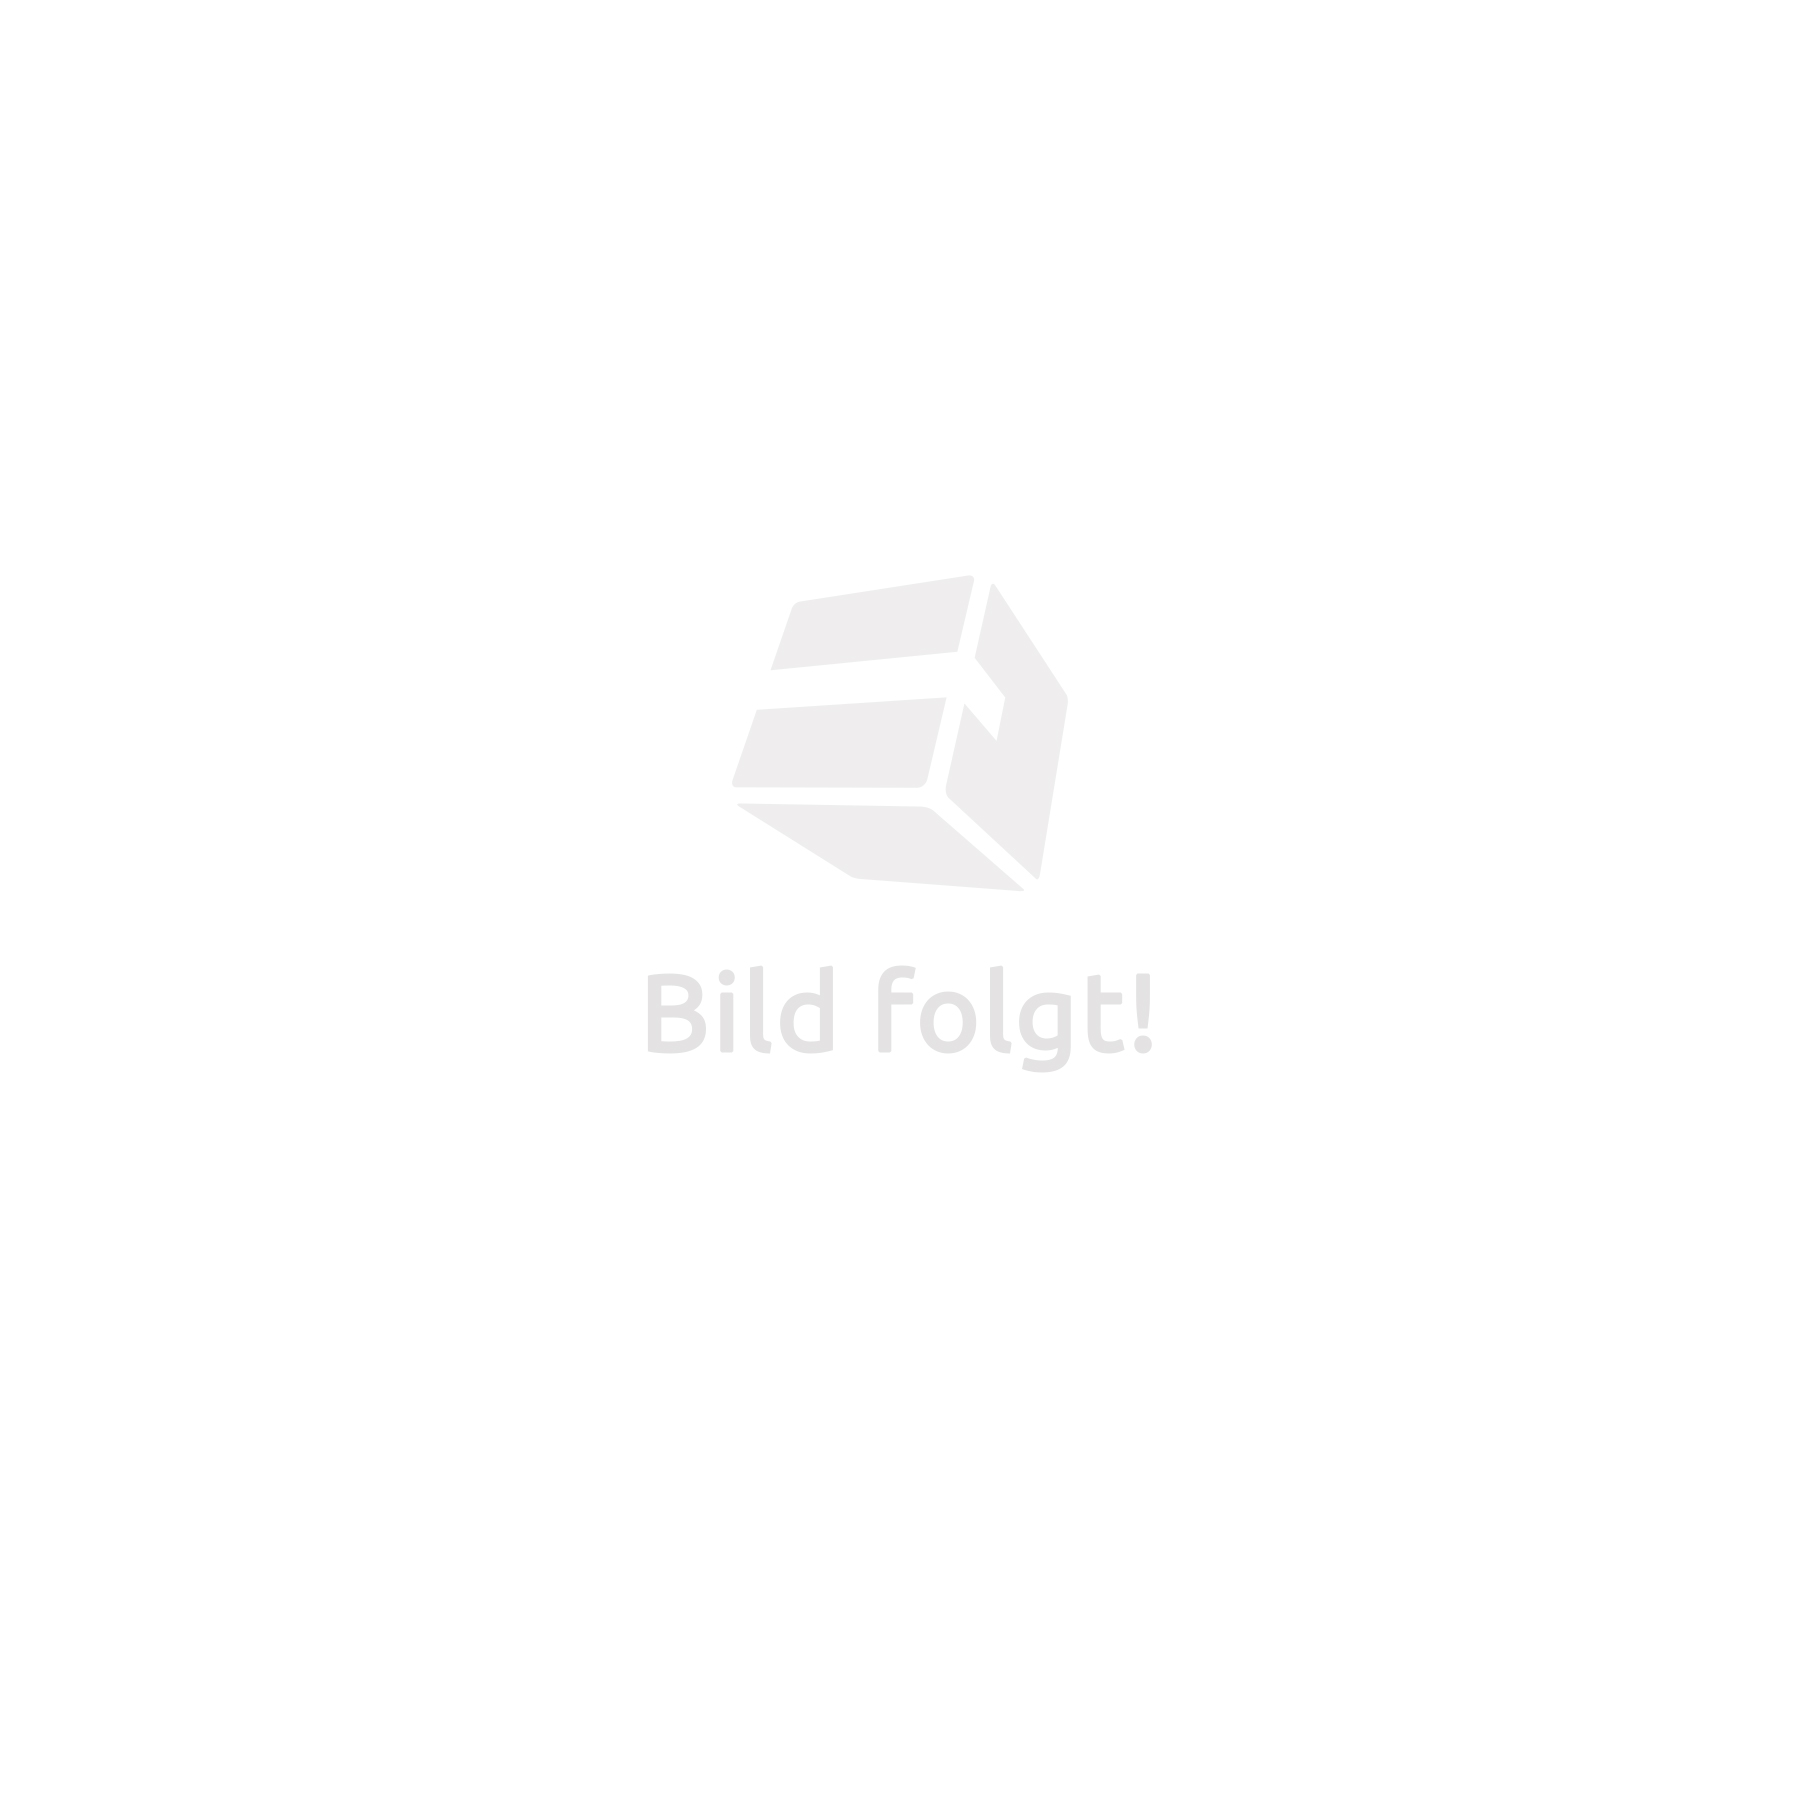 Porte accordéon blanc